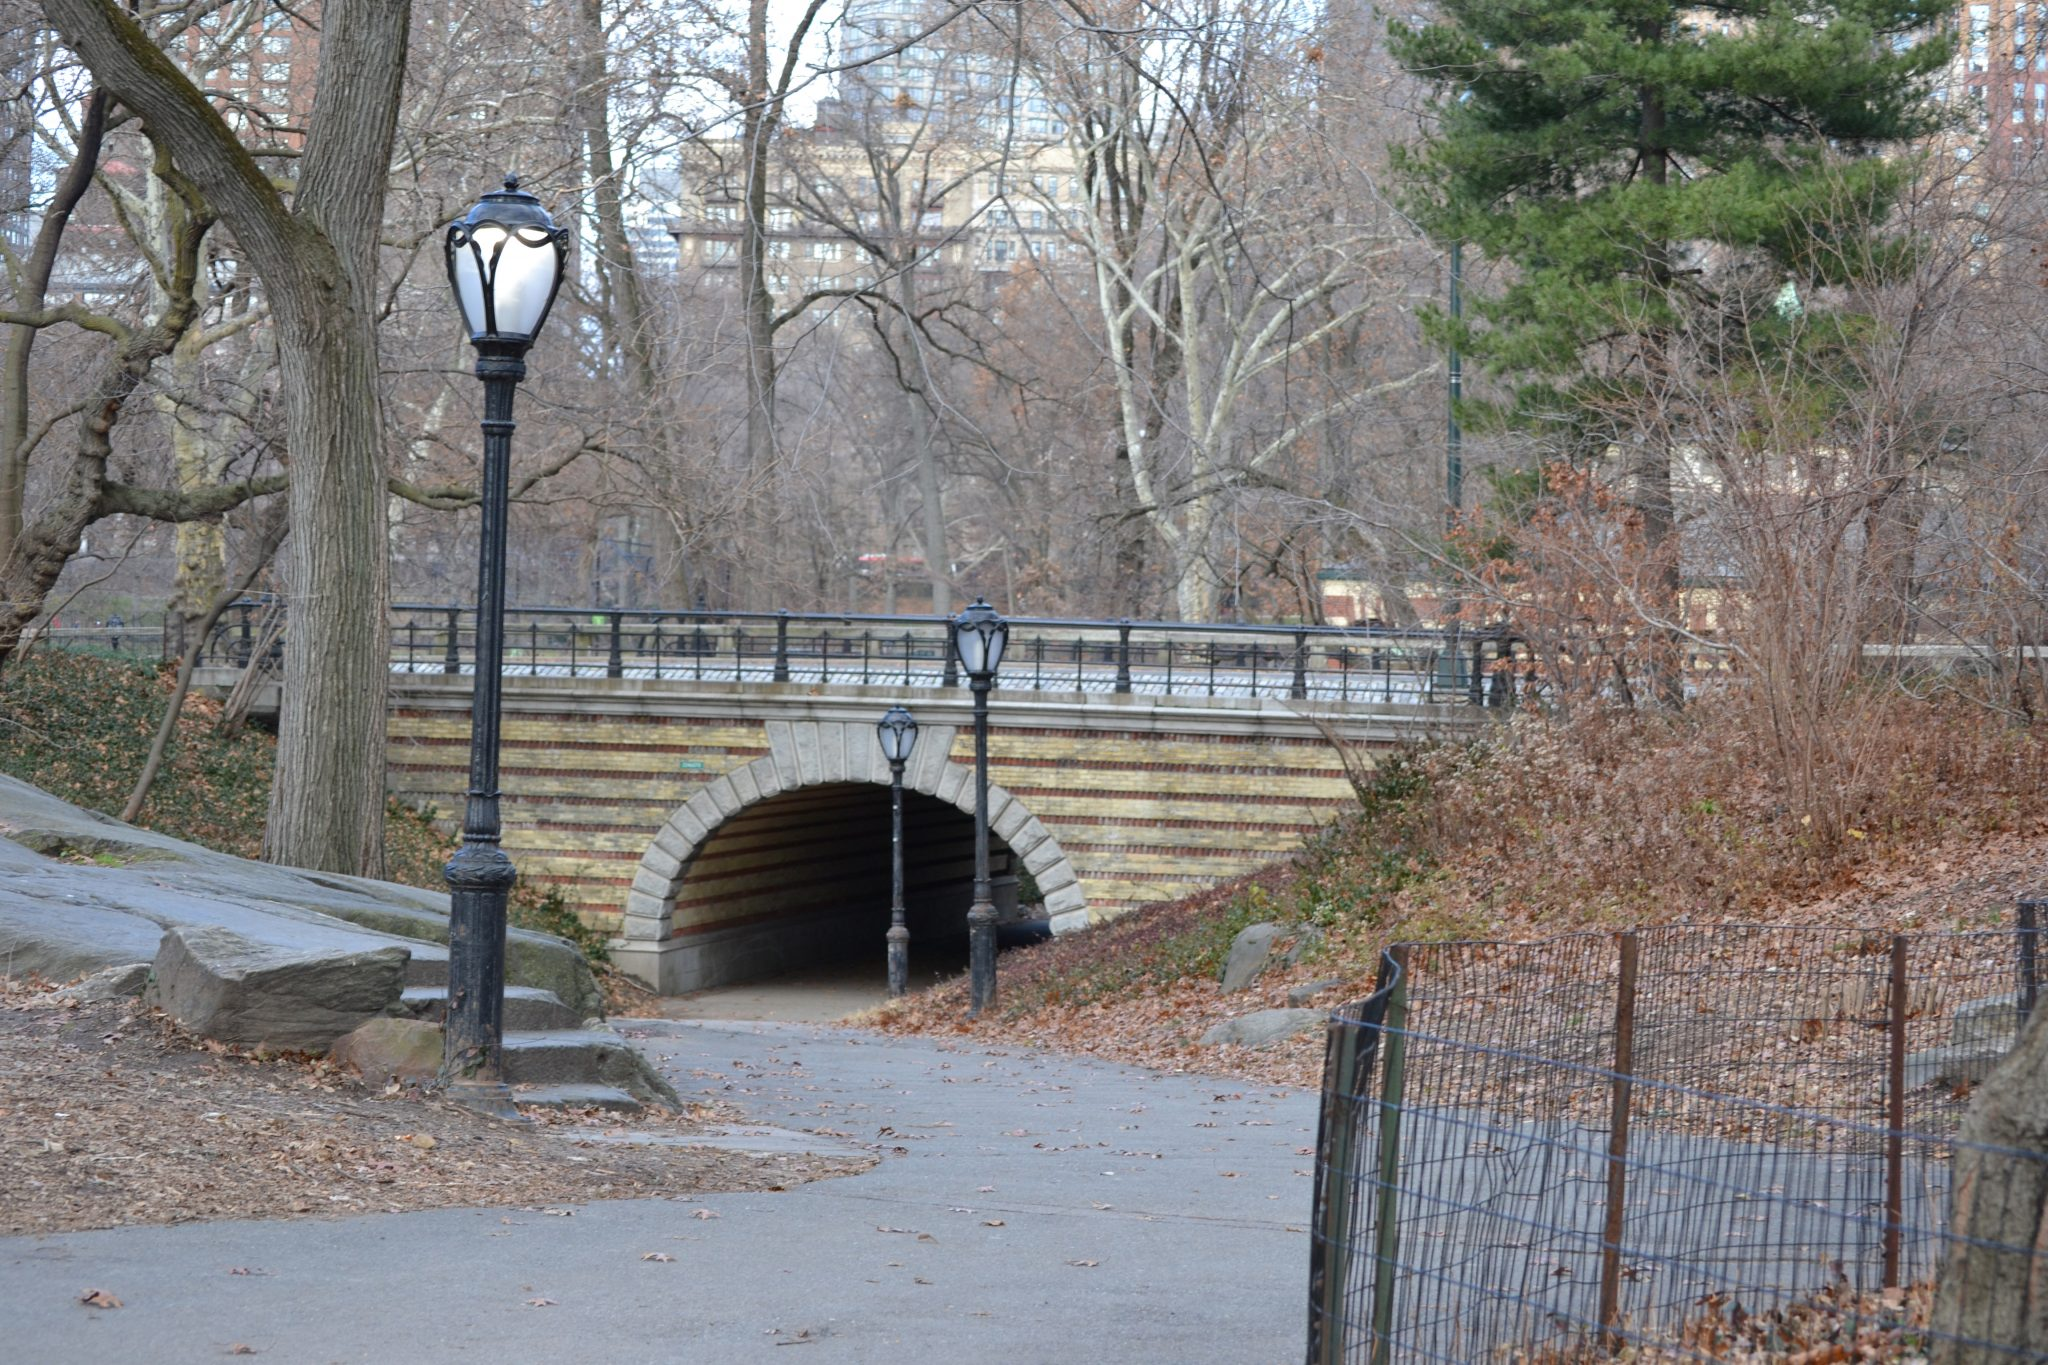 Eine Woche in New York: Central Park & Metropolitan Museum of Art - dsc 0069